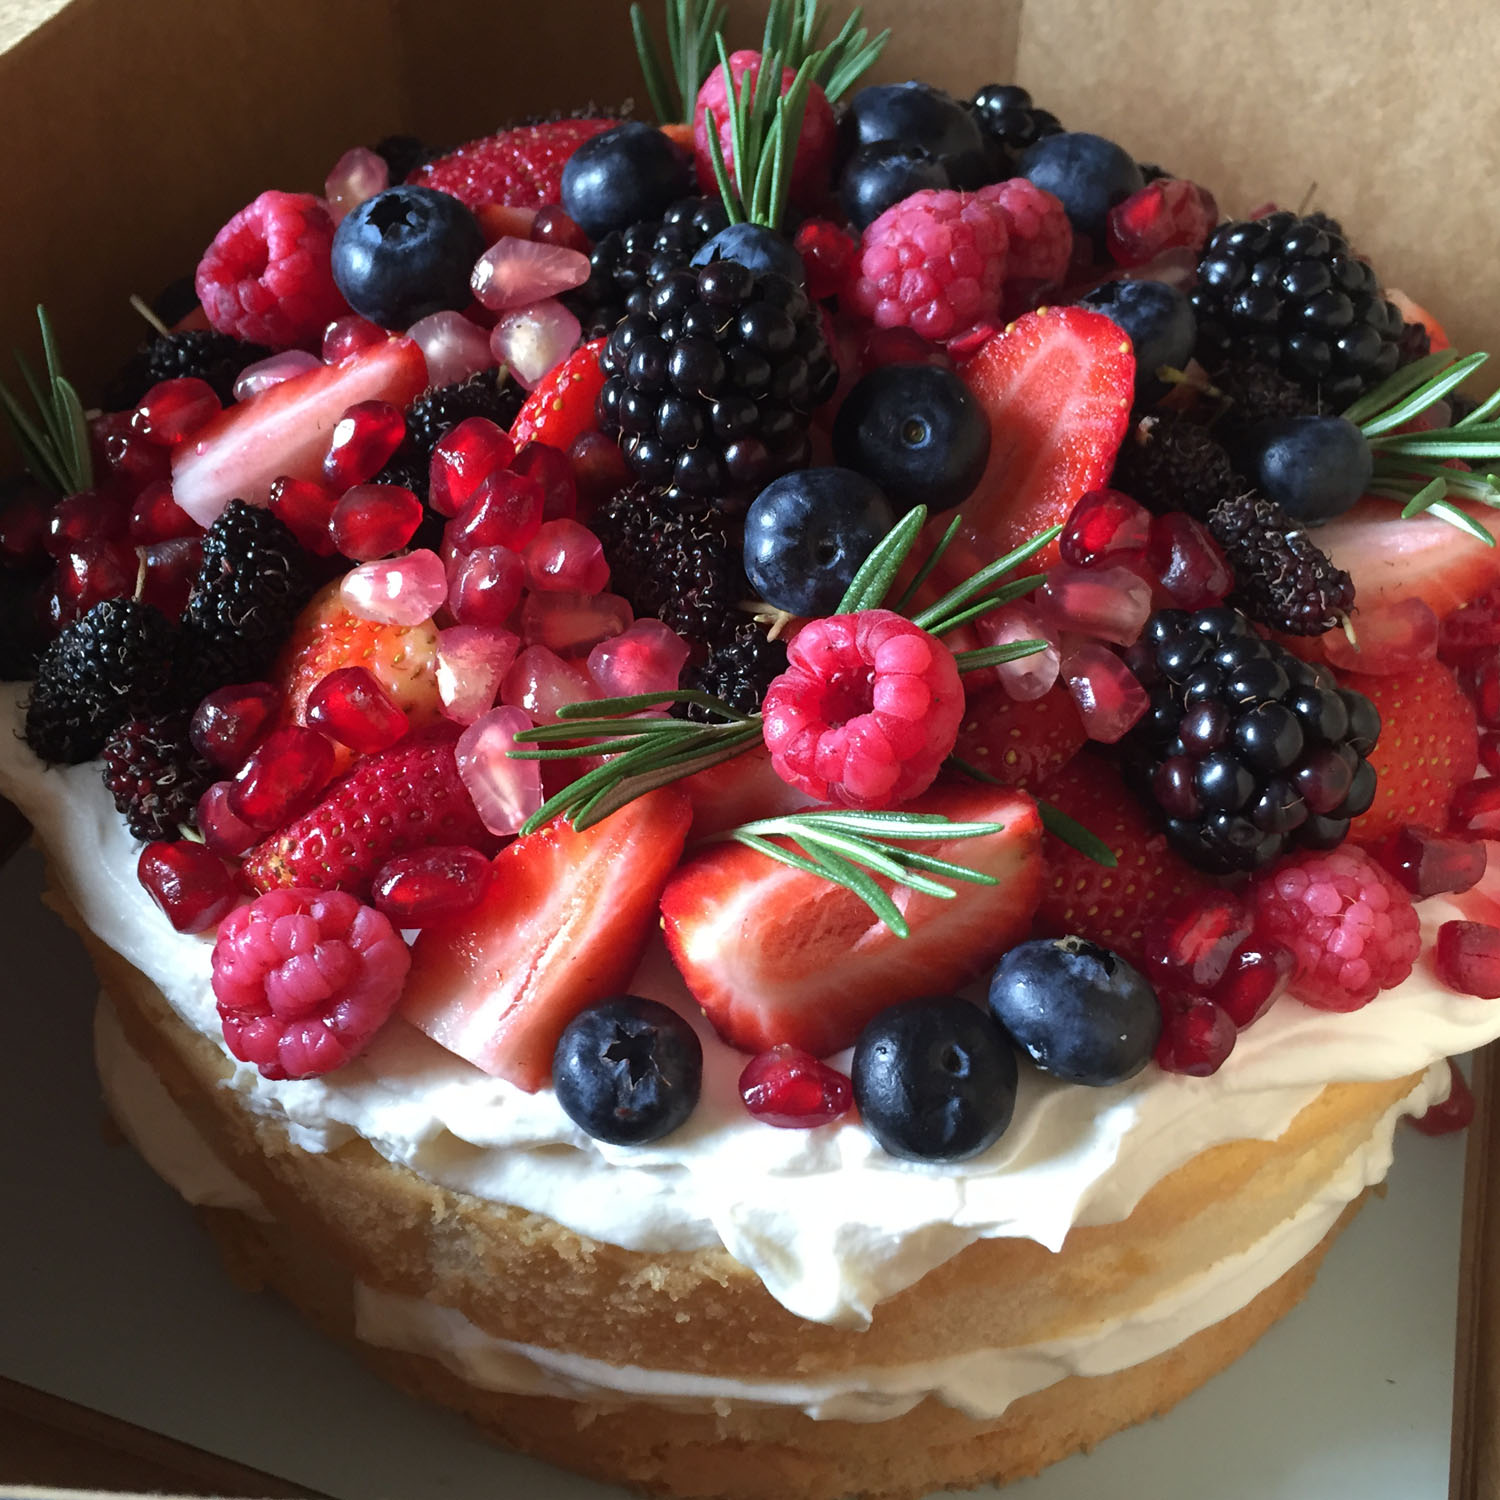 Soft Vanilla - Vanilla sponge cake and whipped cream topped with seasonal berries7